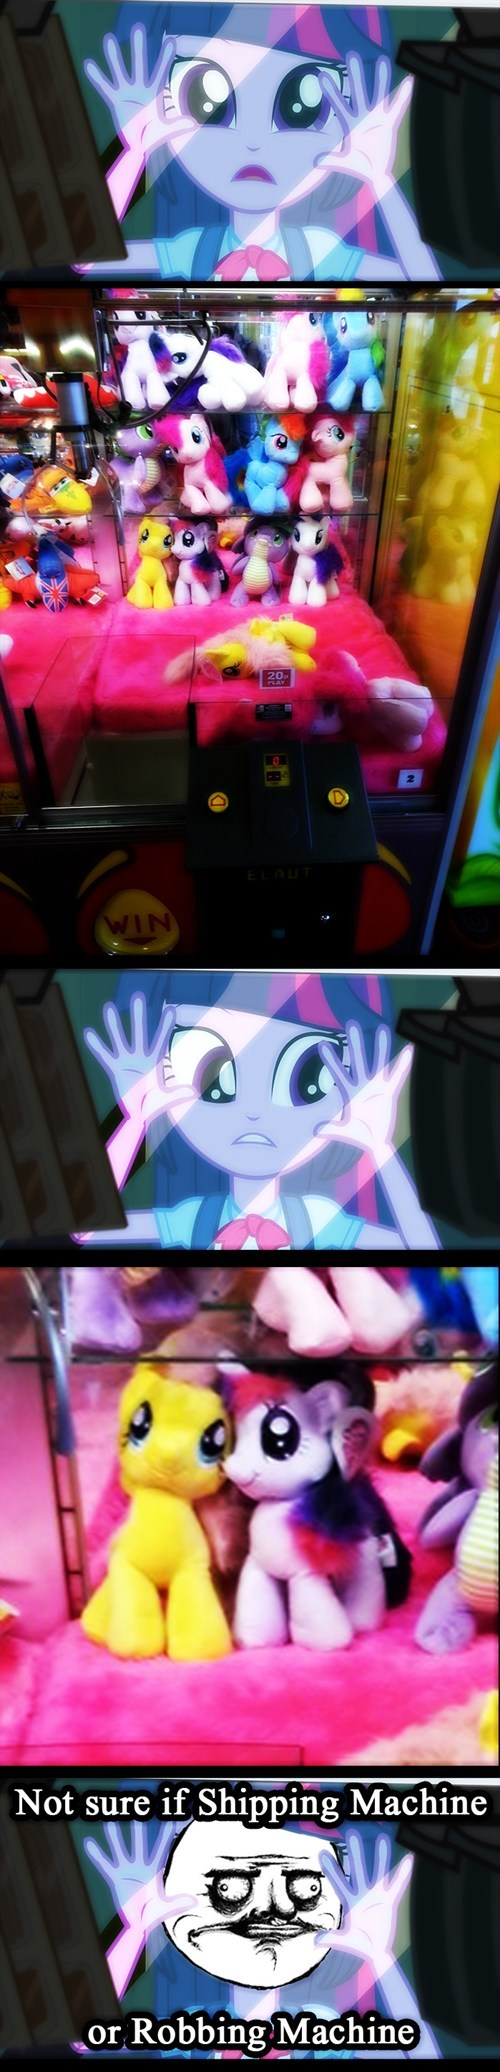 equestria girls twilight sparkle ship - 7824465664